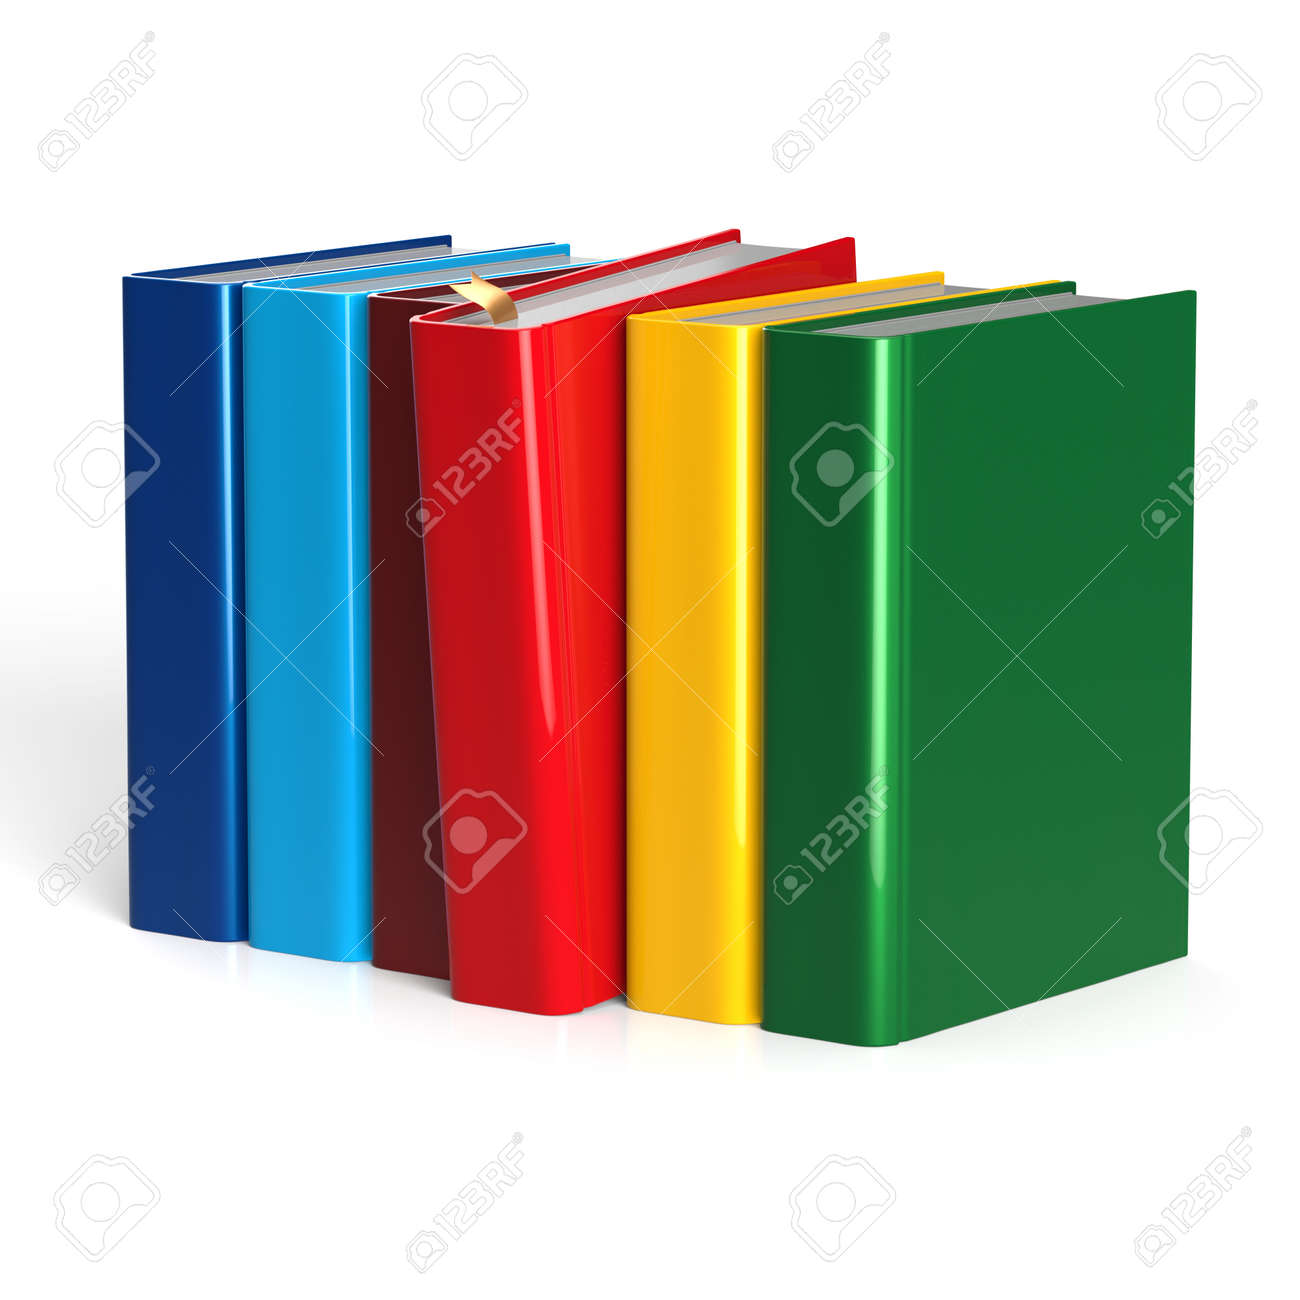 books row selecting red blank covers colorful standing textbook